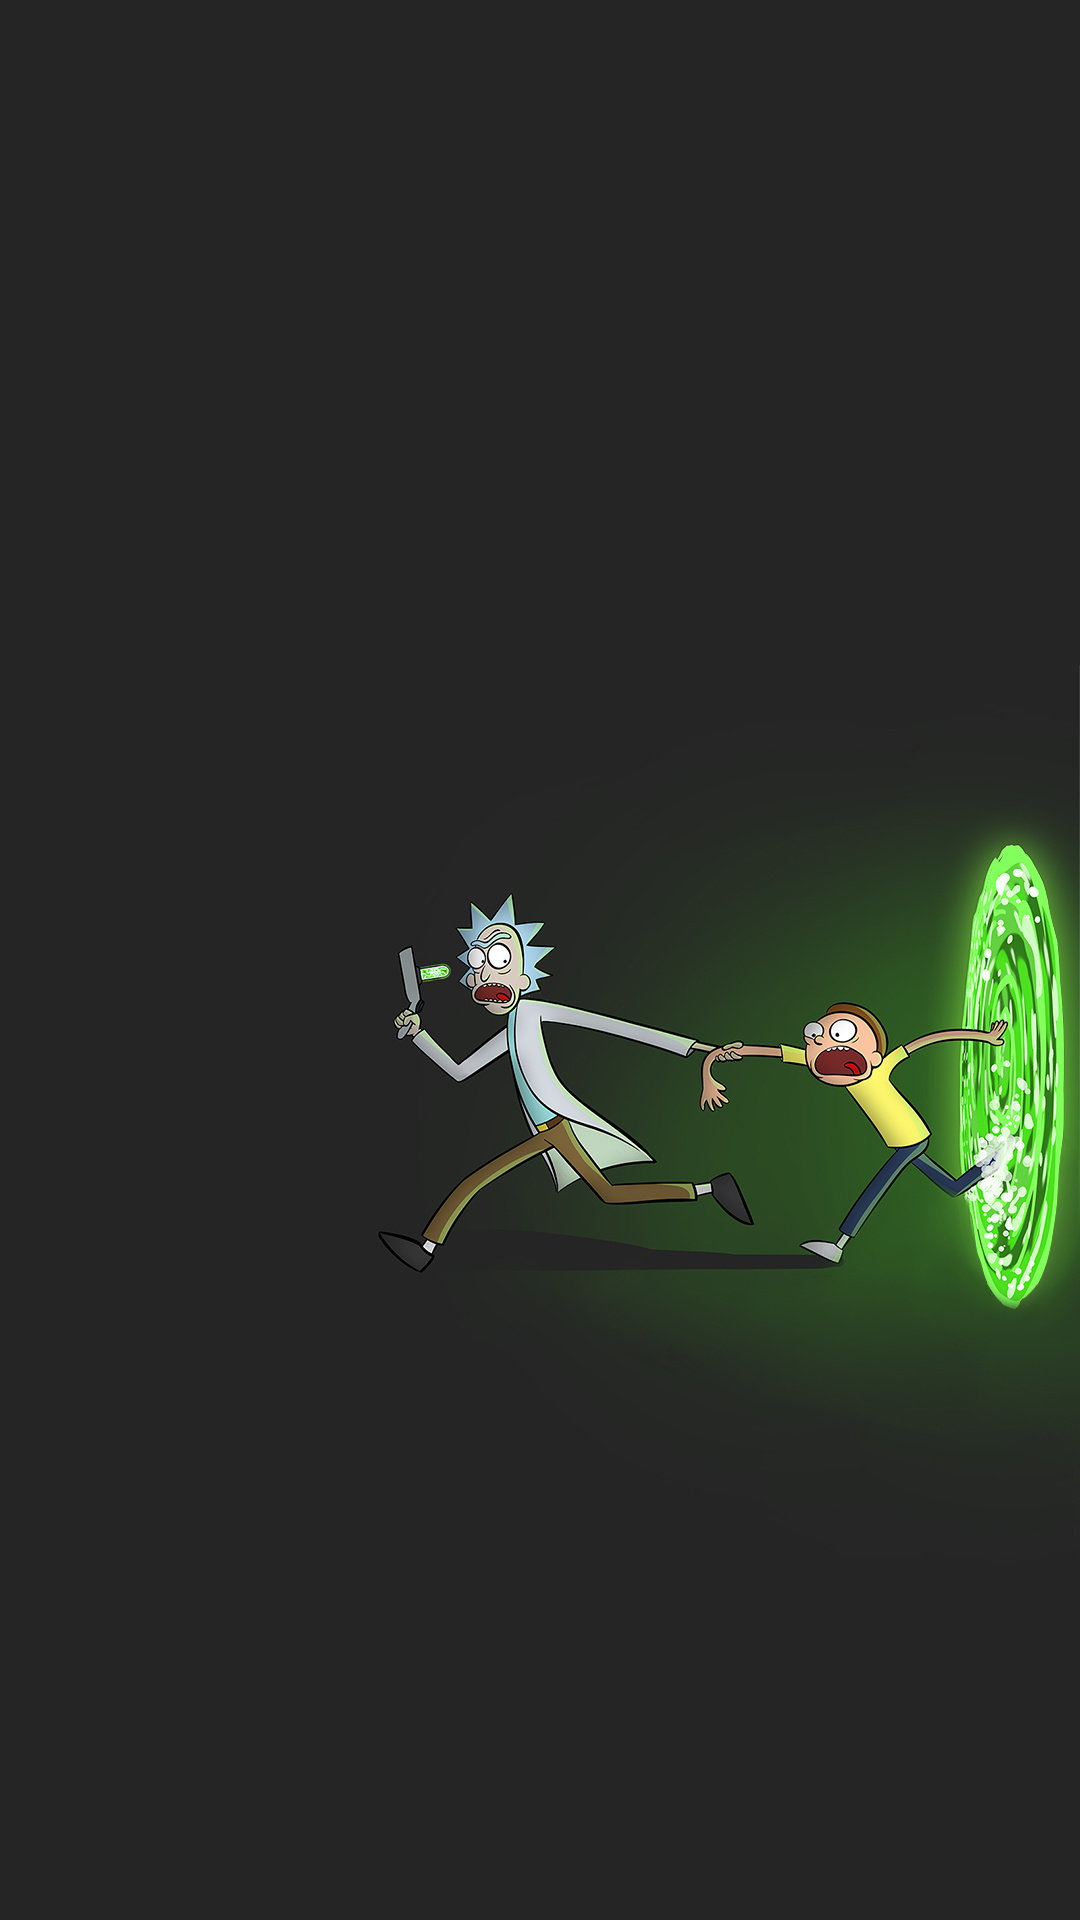 iPhone wallpaper rick and morty1 Les 3Wallpapers iPhone du jour (12/03/2018)